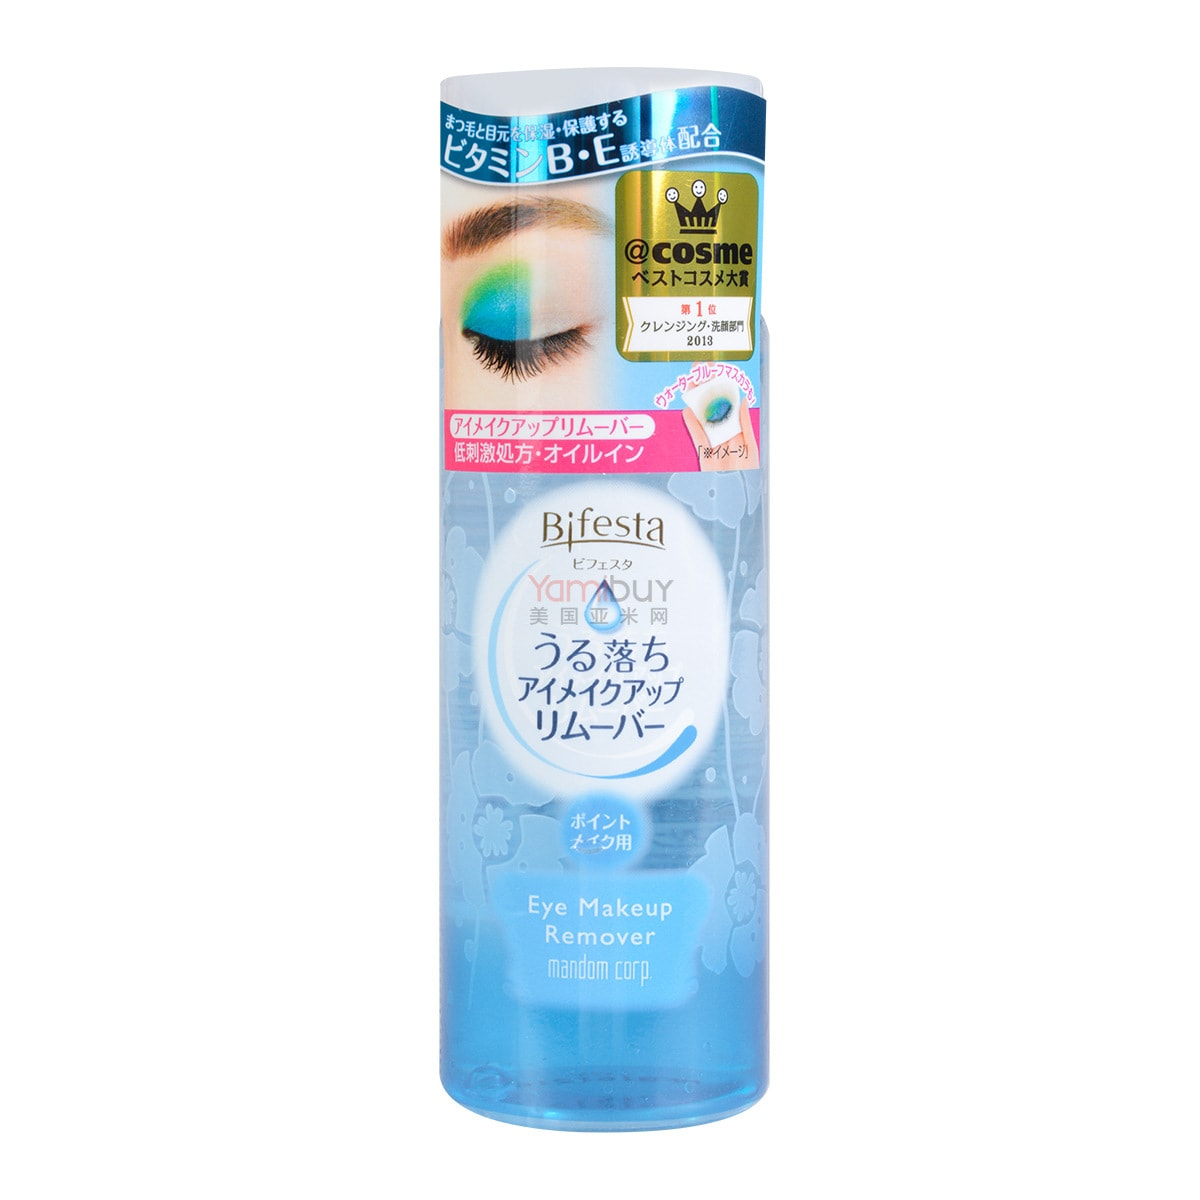 MANDOM CORP. BIFESTA Eye Makeup Remover 145ml